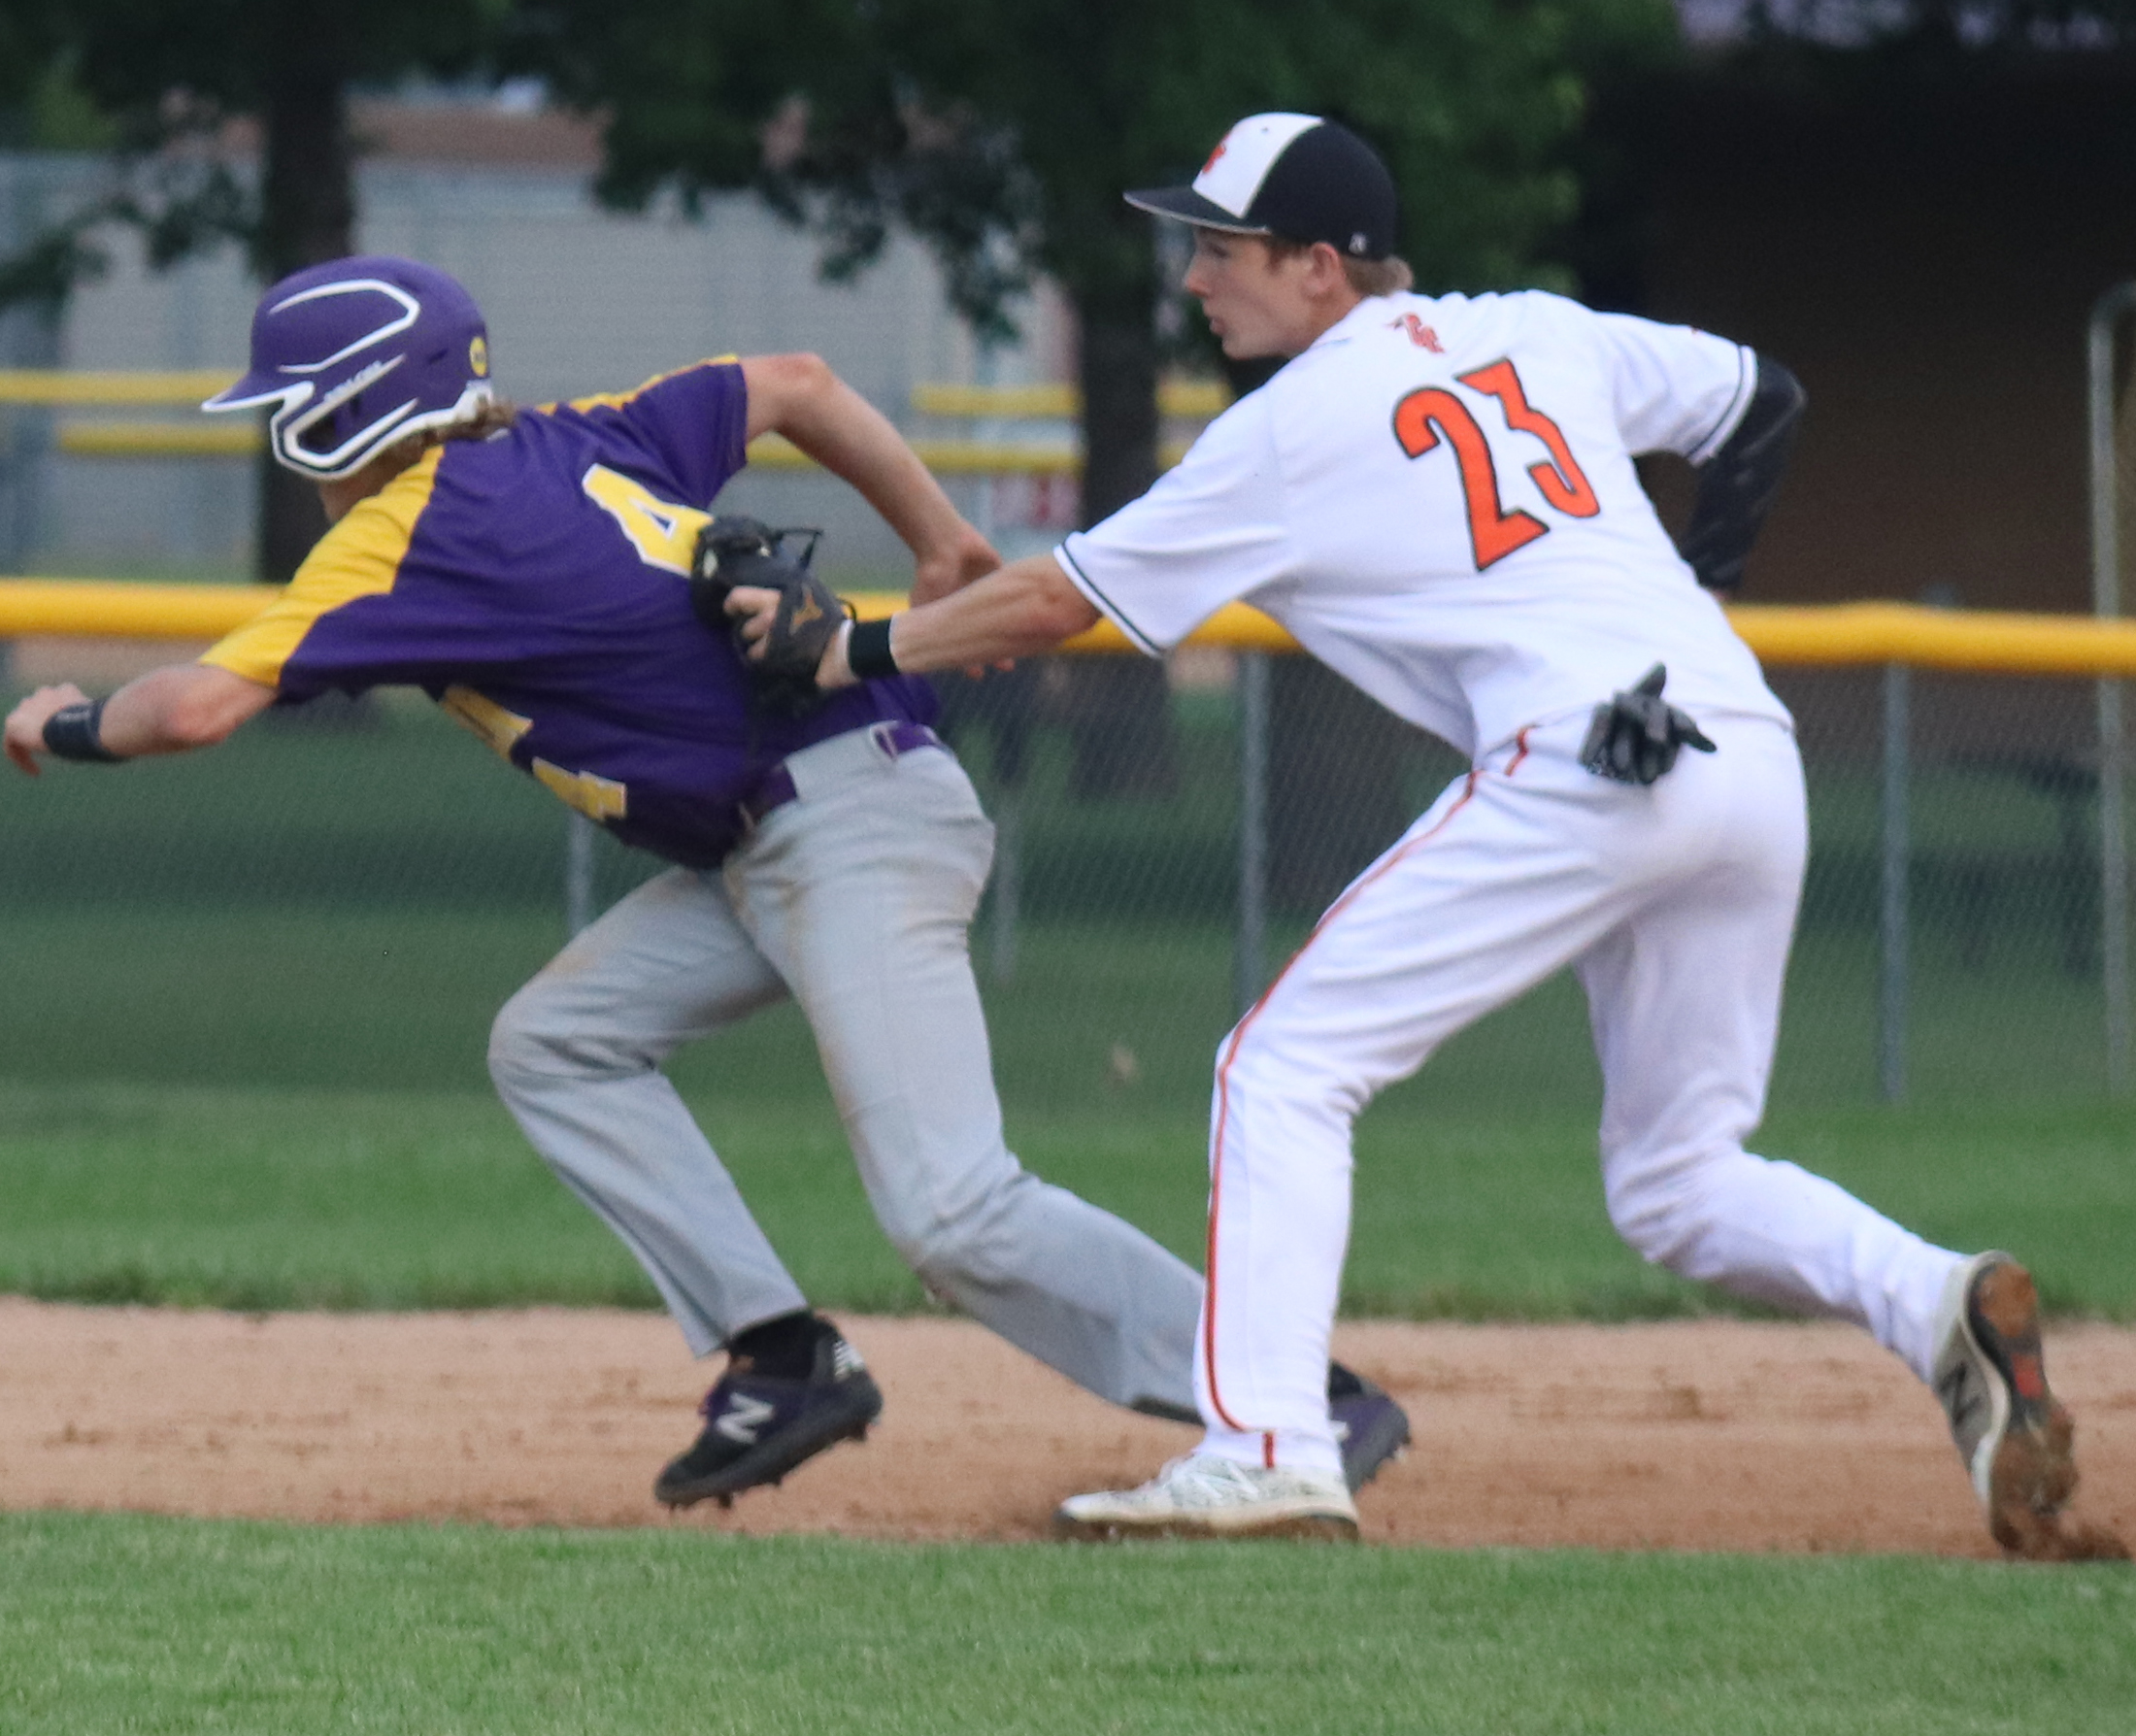 Charles City rallies back against Oelwein ace, but Huskies  hang on to win 7-5